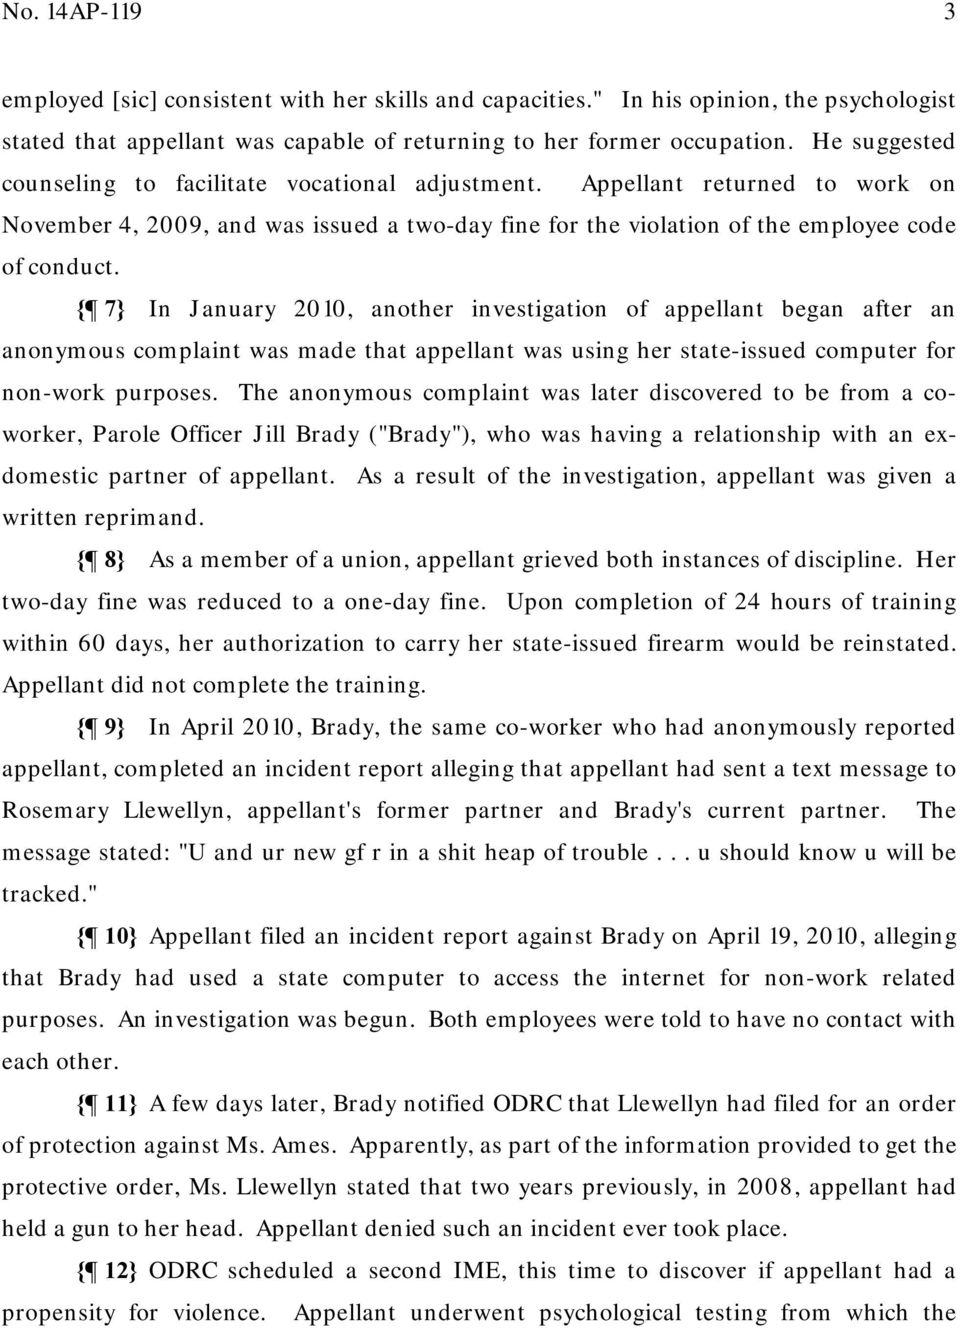 { 7} In January 2010, another investigation of appellant began after an anonymous complaint was made that appellant was using her state-issued computer for non-work purposes.